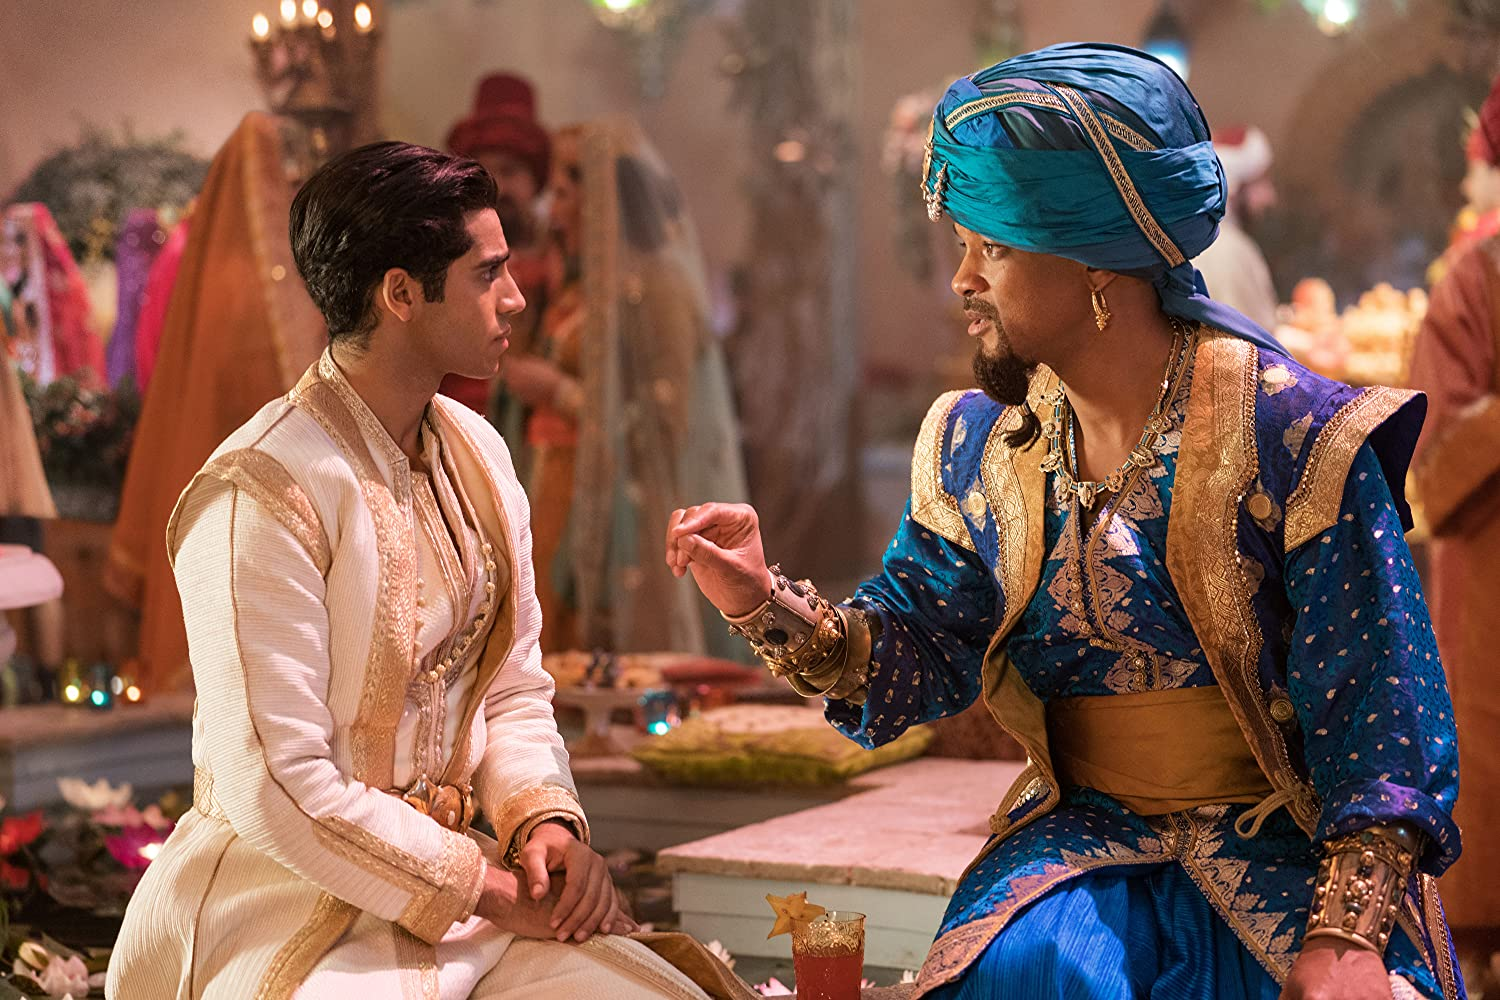 Will Smith and Mena Massoud in Aladdin (2019)